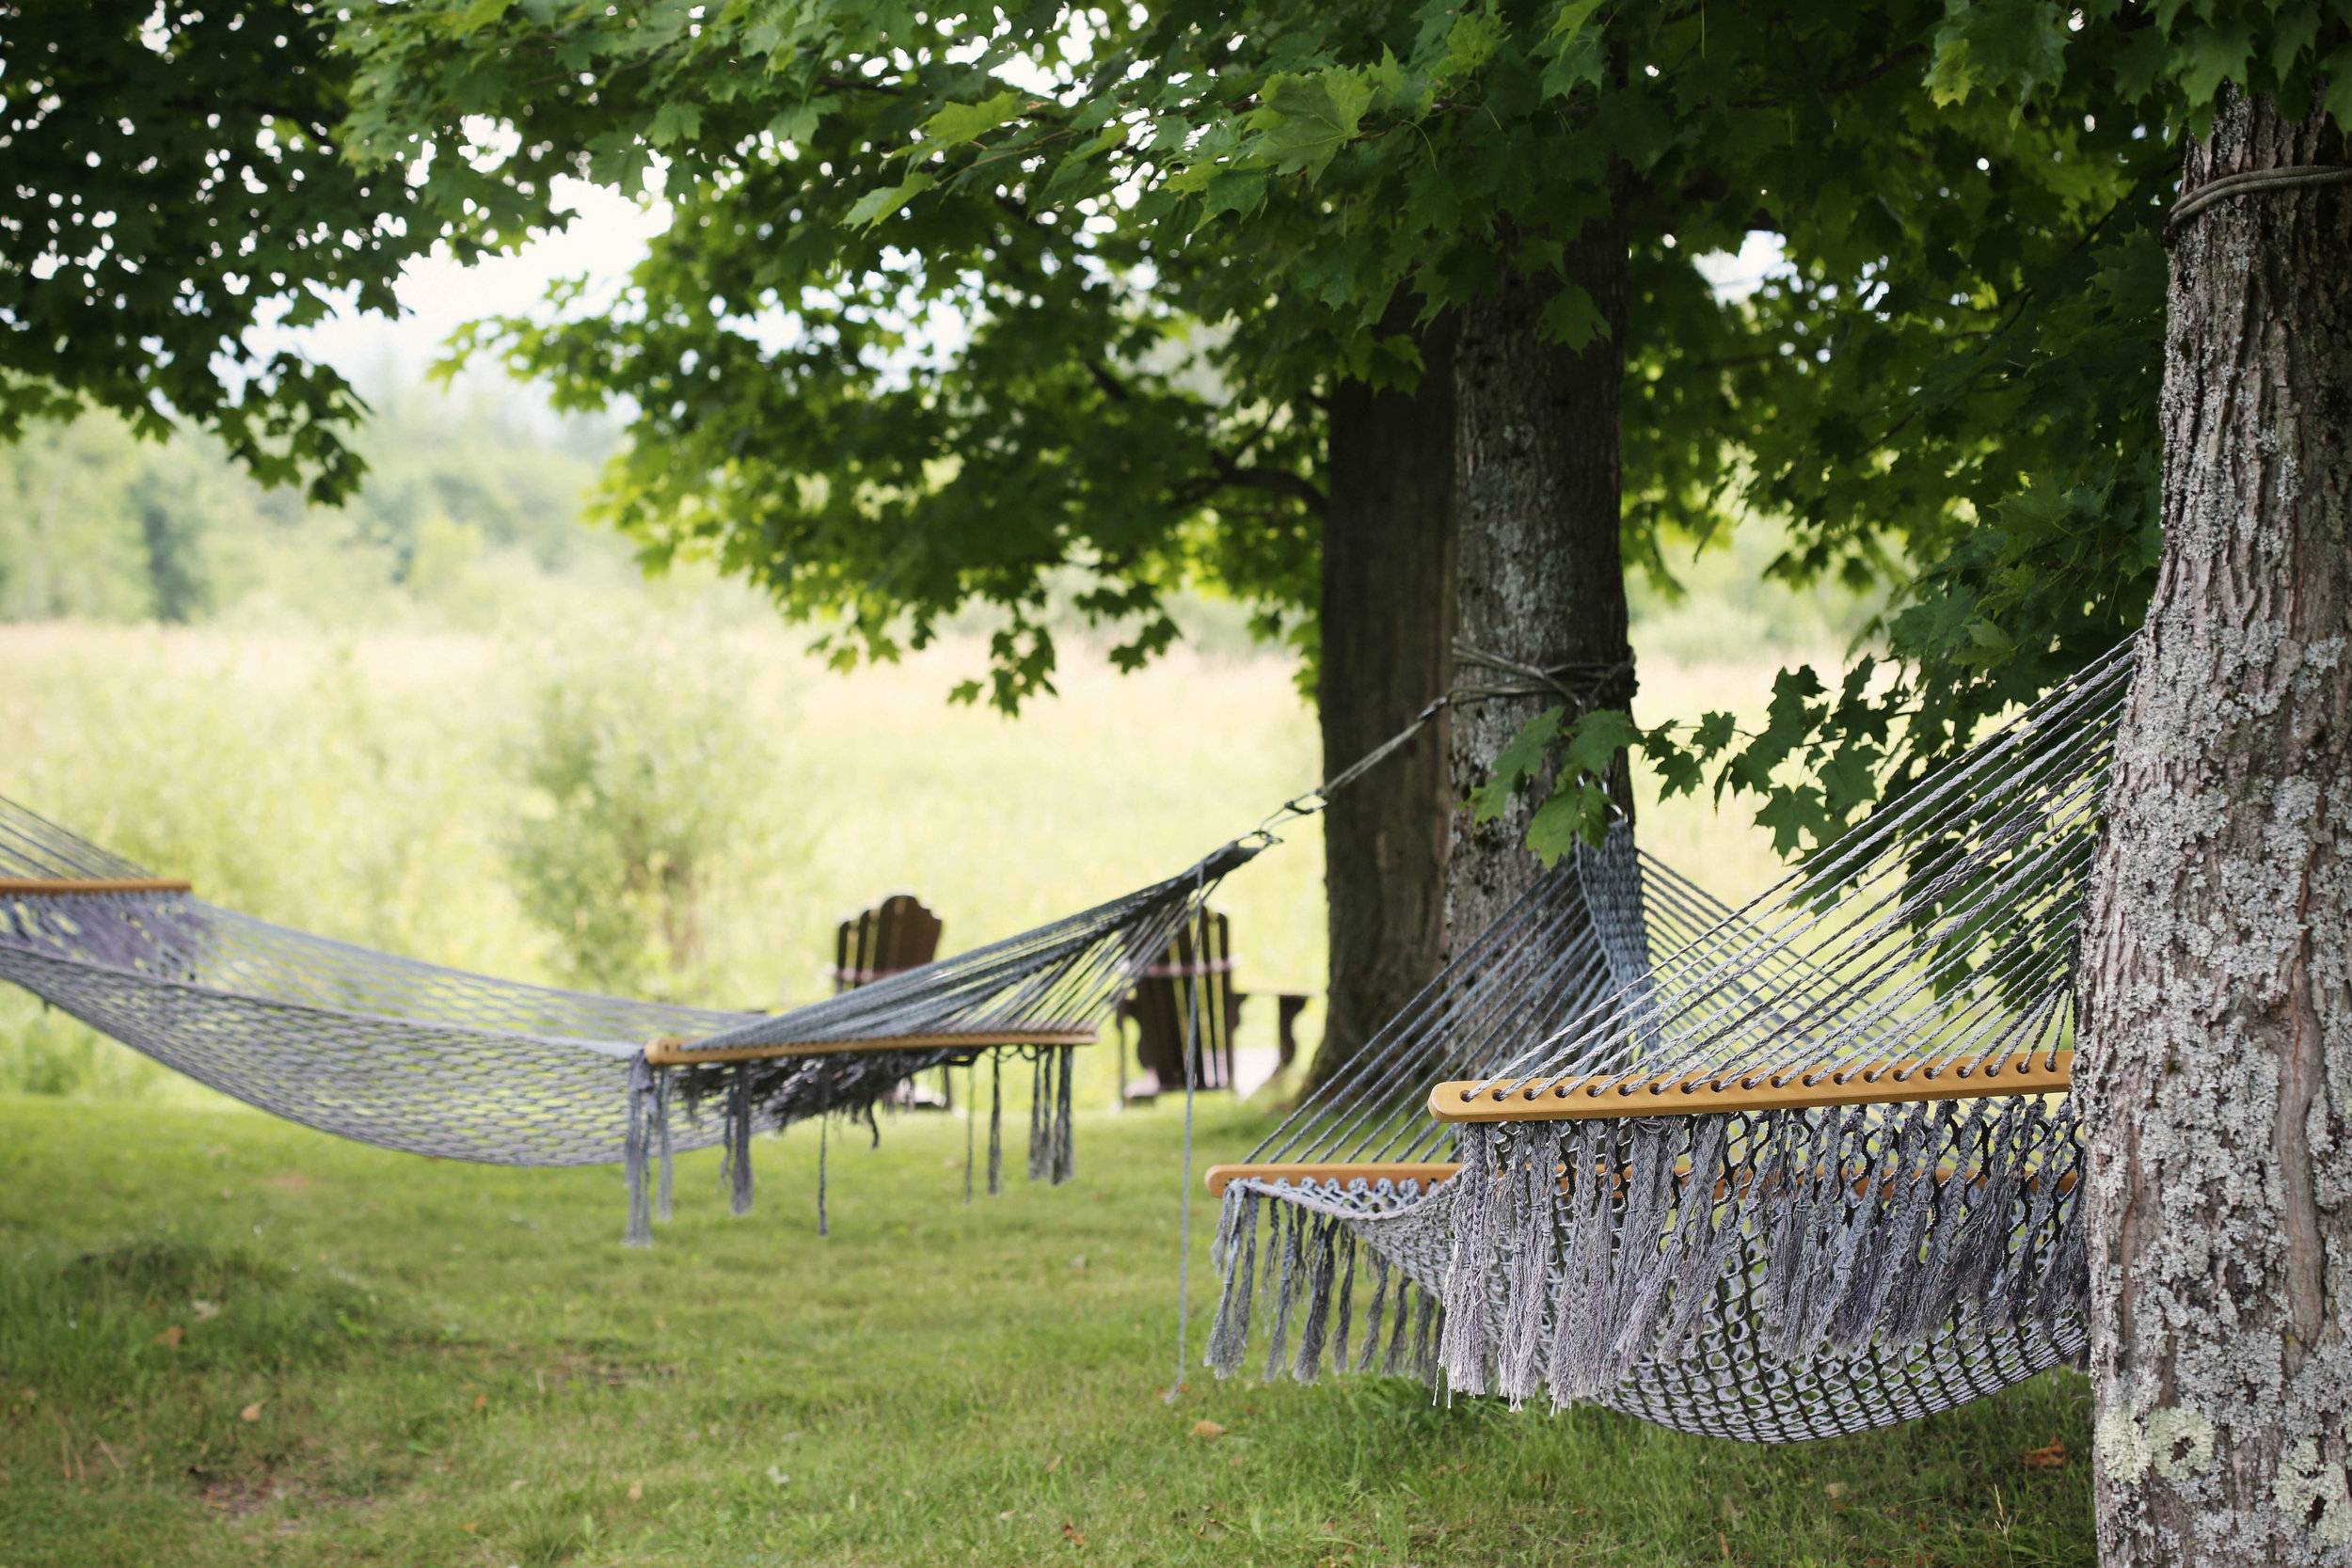 health-benefits-of-plants-hammock.jpg